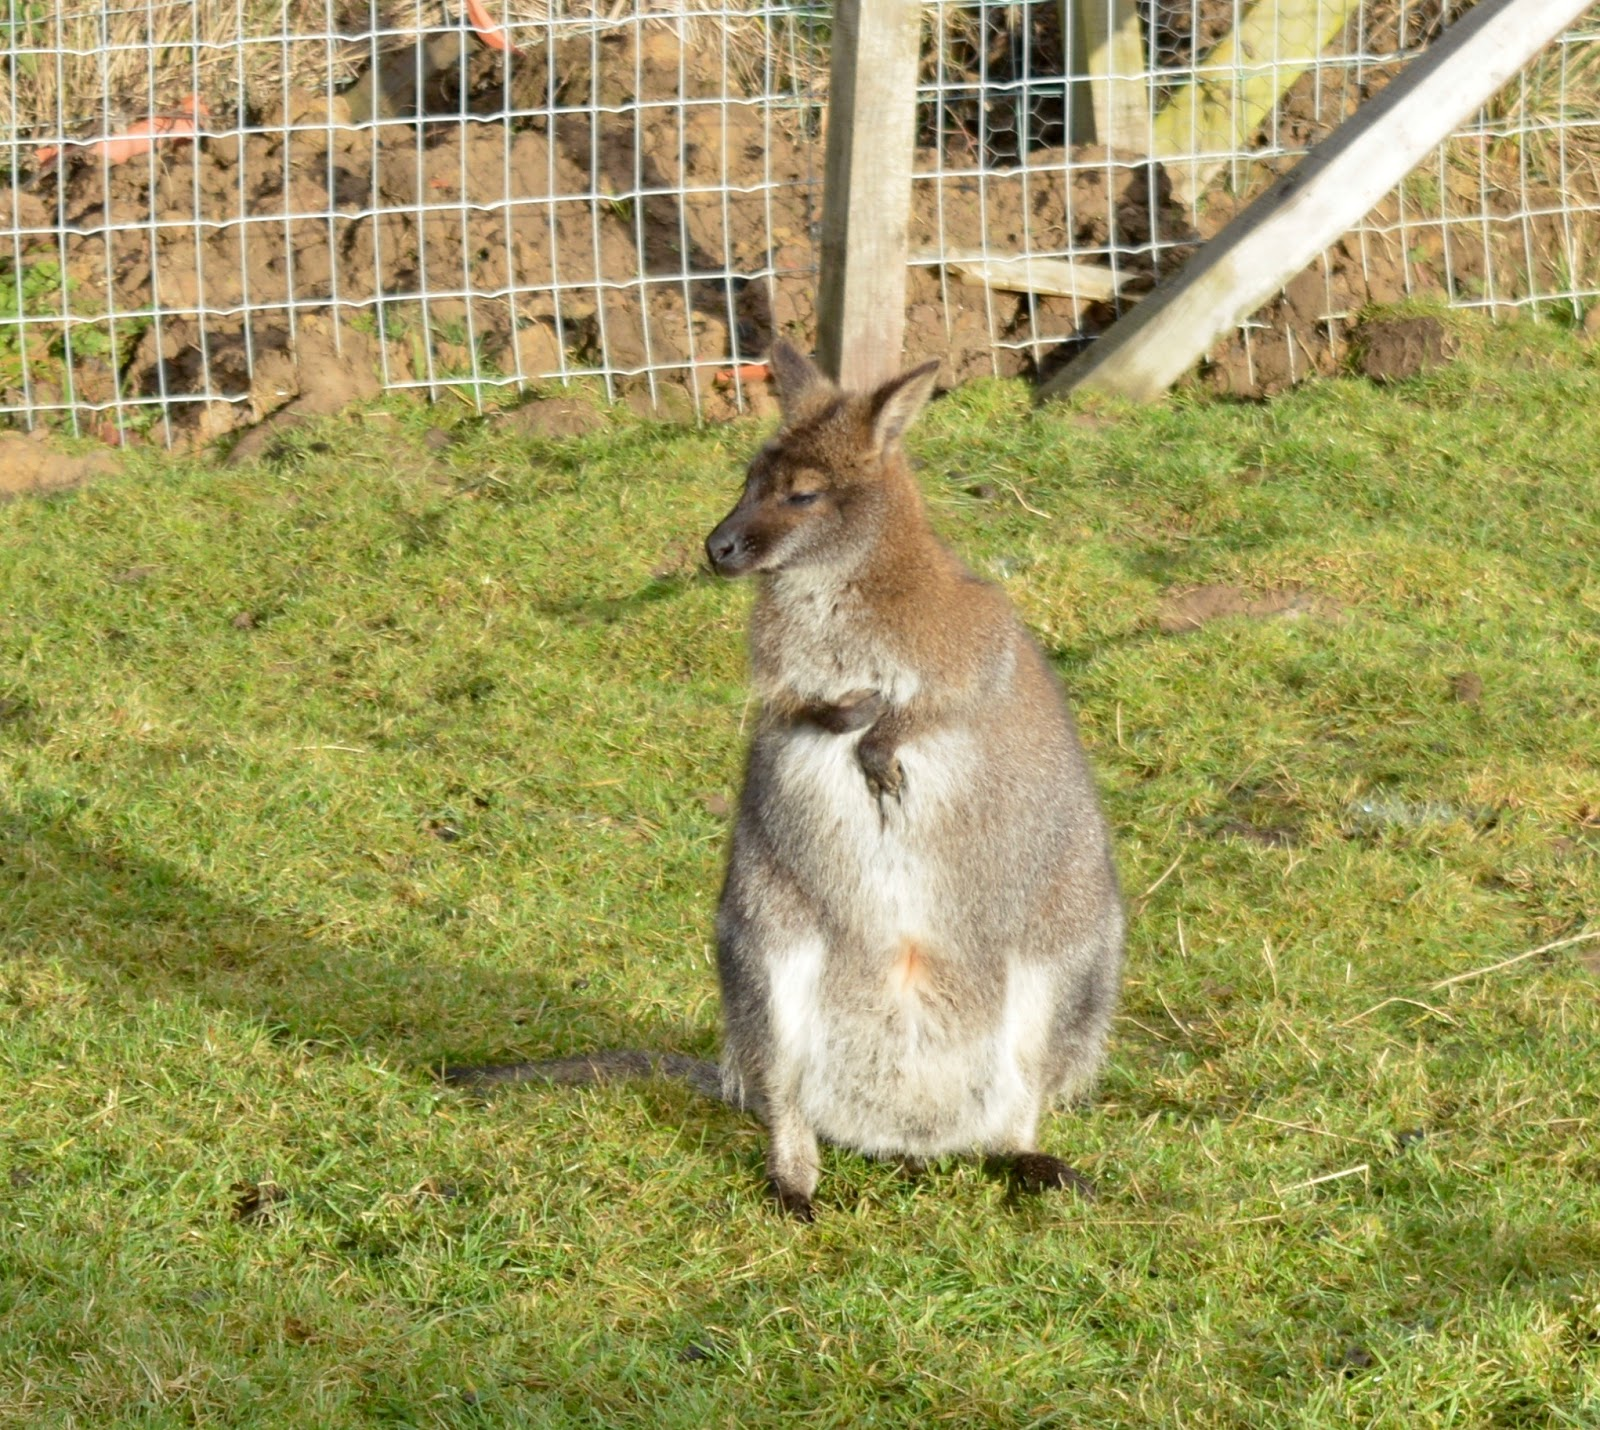 Northumberland County Zoo Reviews - wallabies